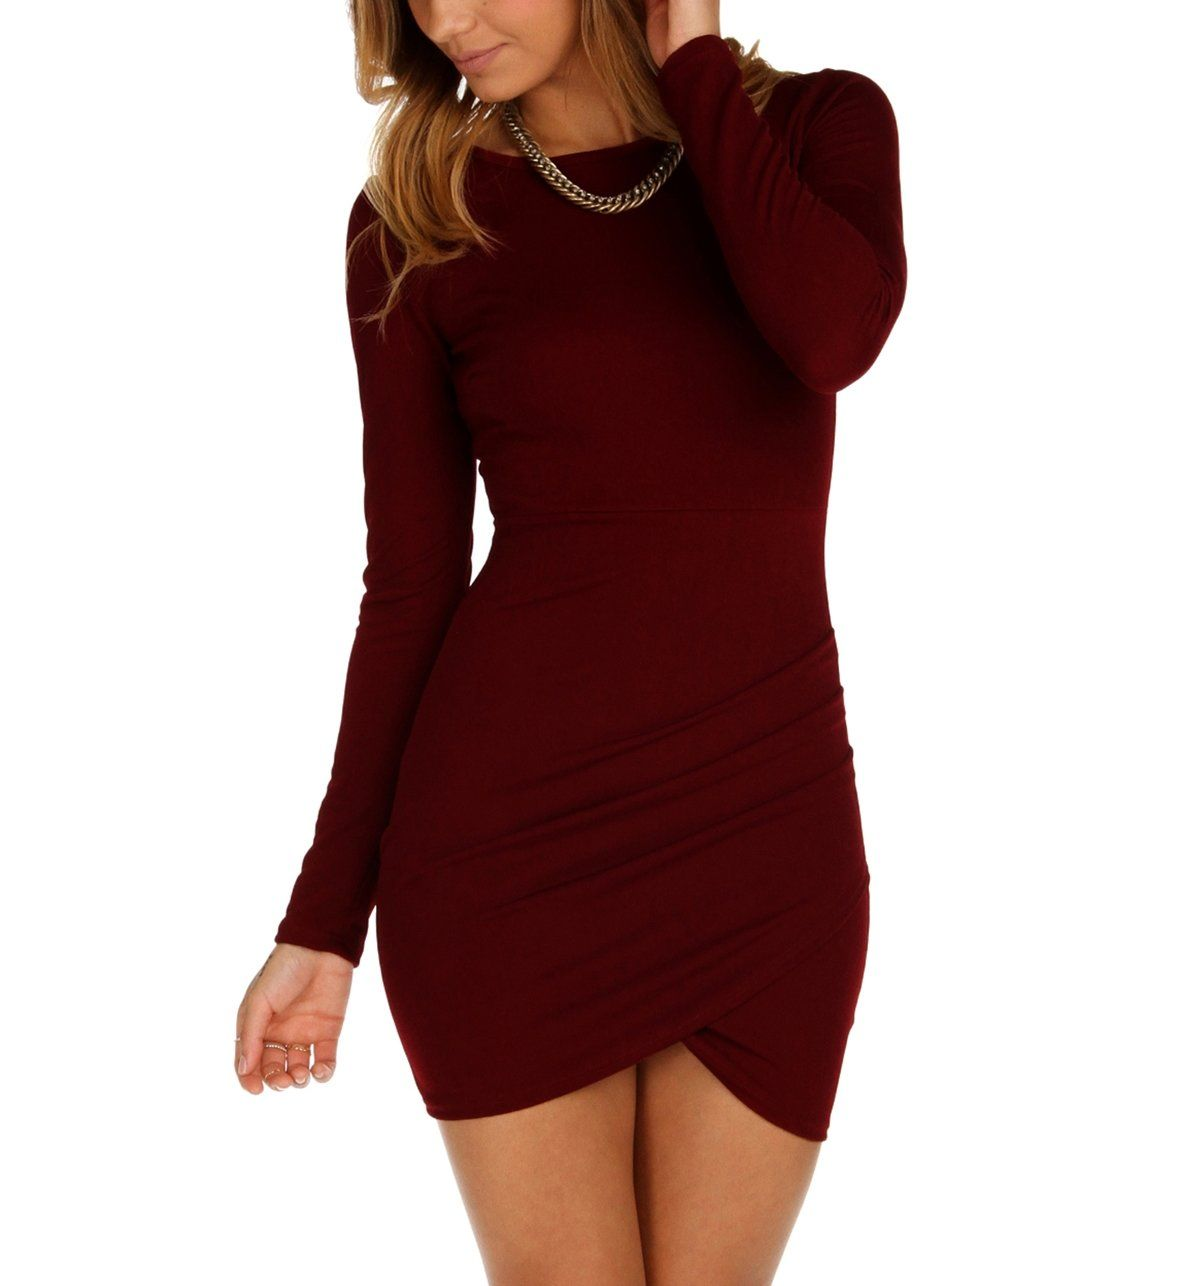 Burgundy Chic Deep Back Dress From Windsor Red Long Sleeve Dress Burgundy Long Sleeve Dress Red Fitted Dress [ 1286 x 1180 Pixel ]